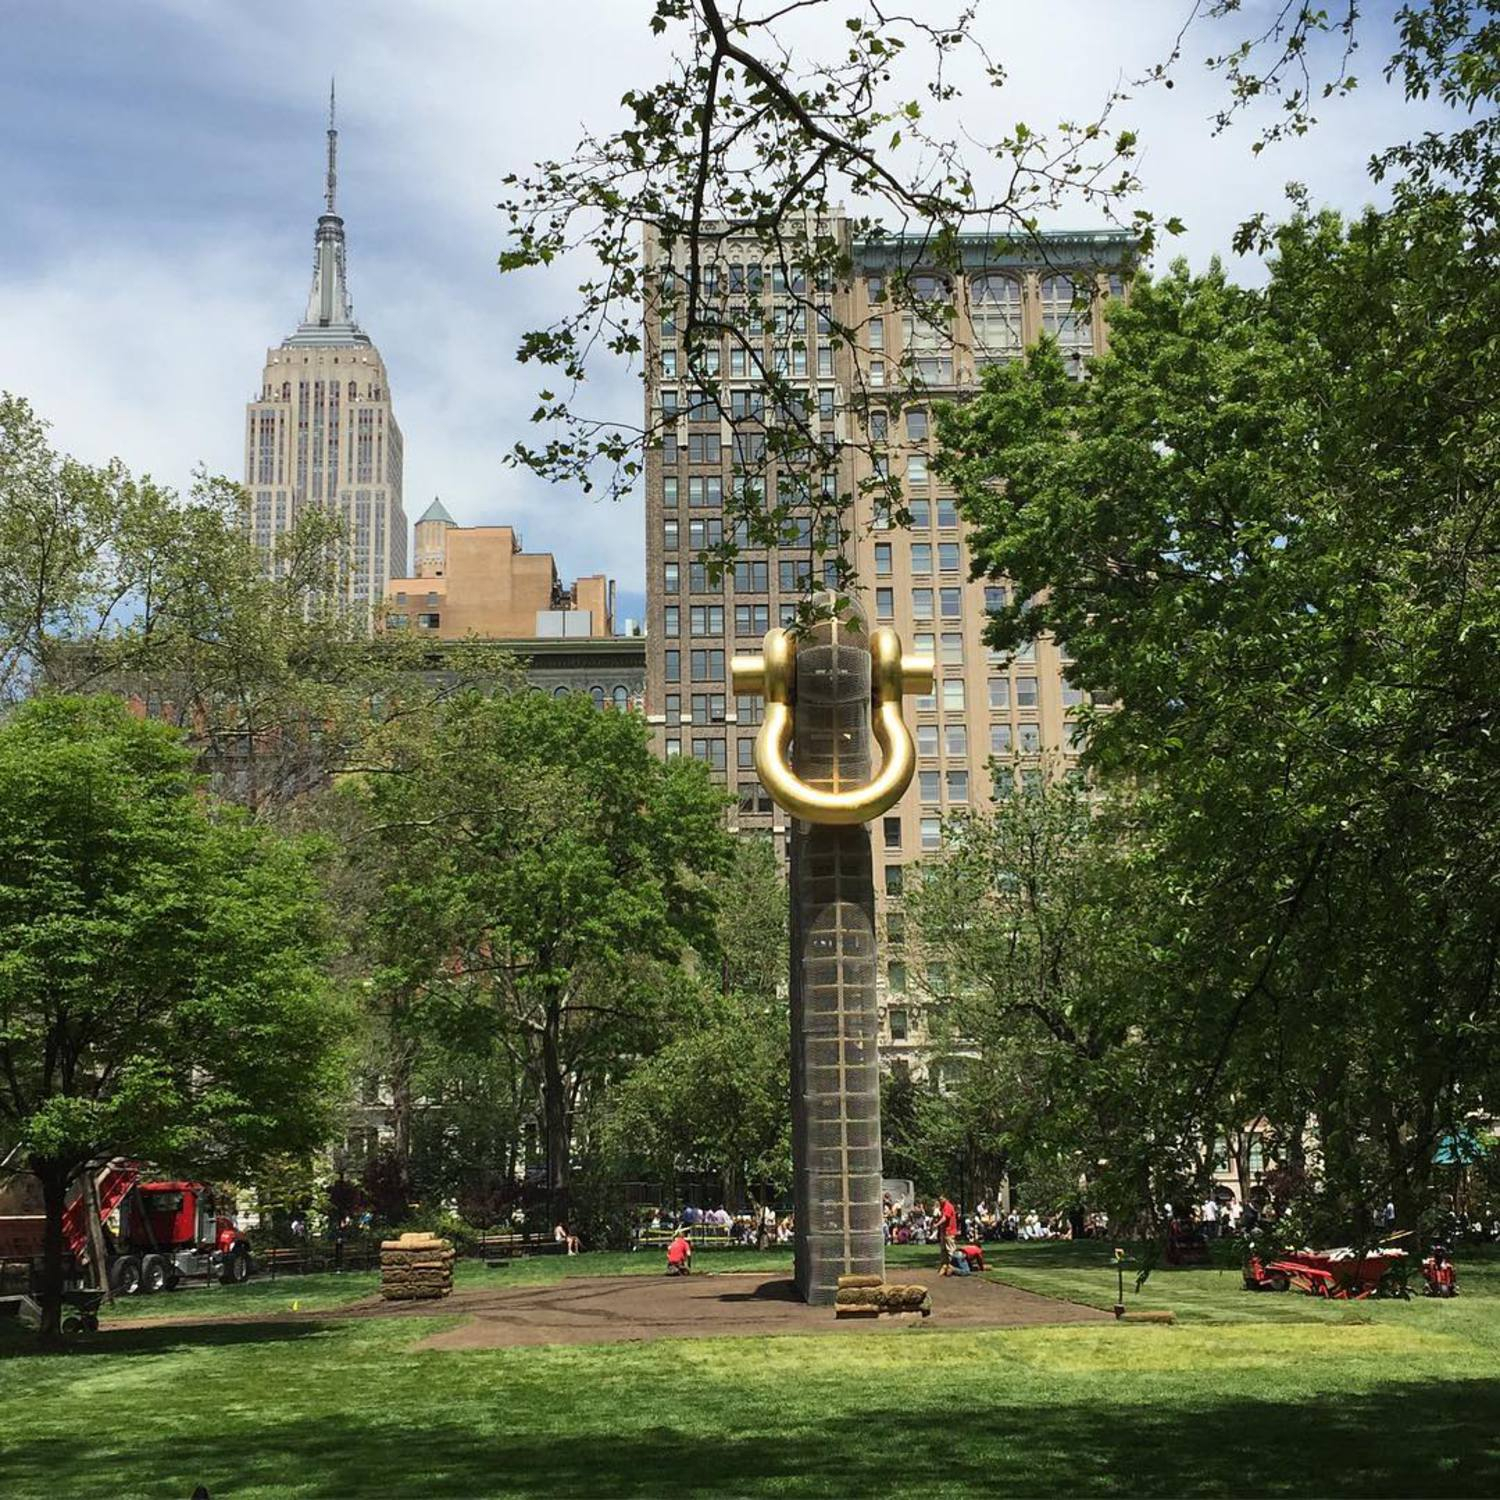 Walk in the park with @nalanie_n  #MartinPuryear #BigBling #MadSqArt #nofilter @madsqparknyc